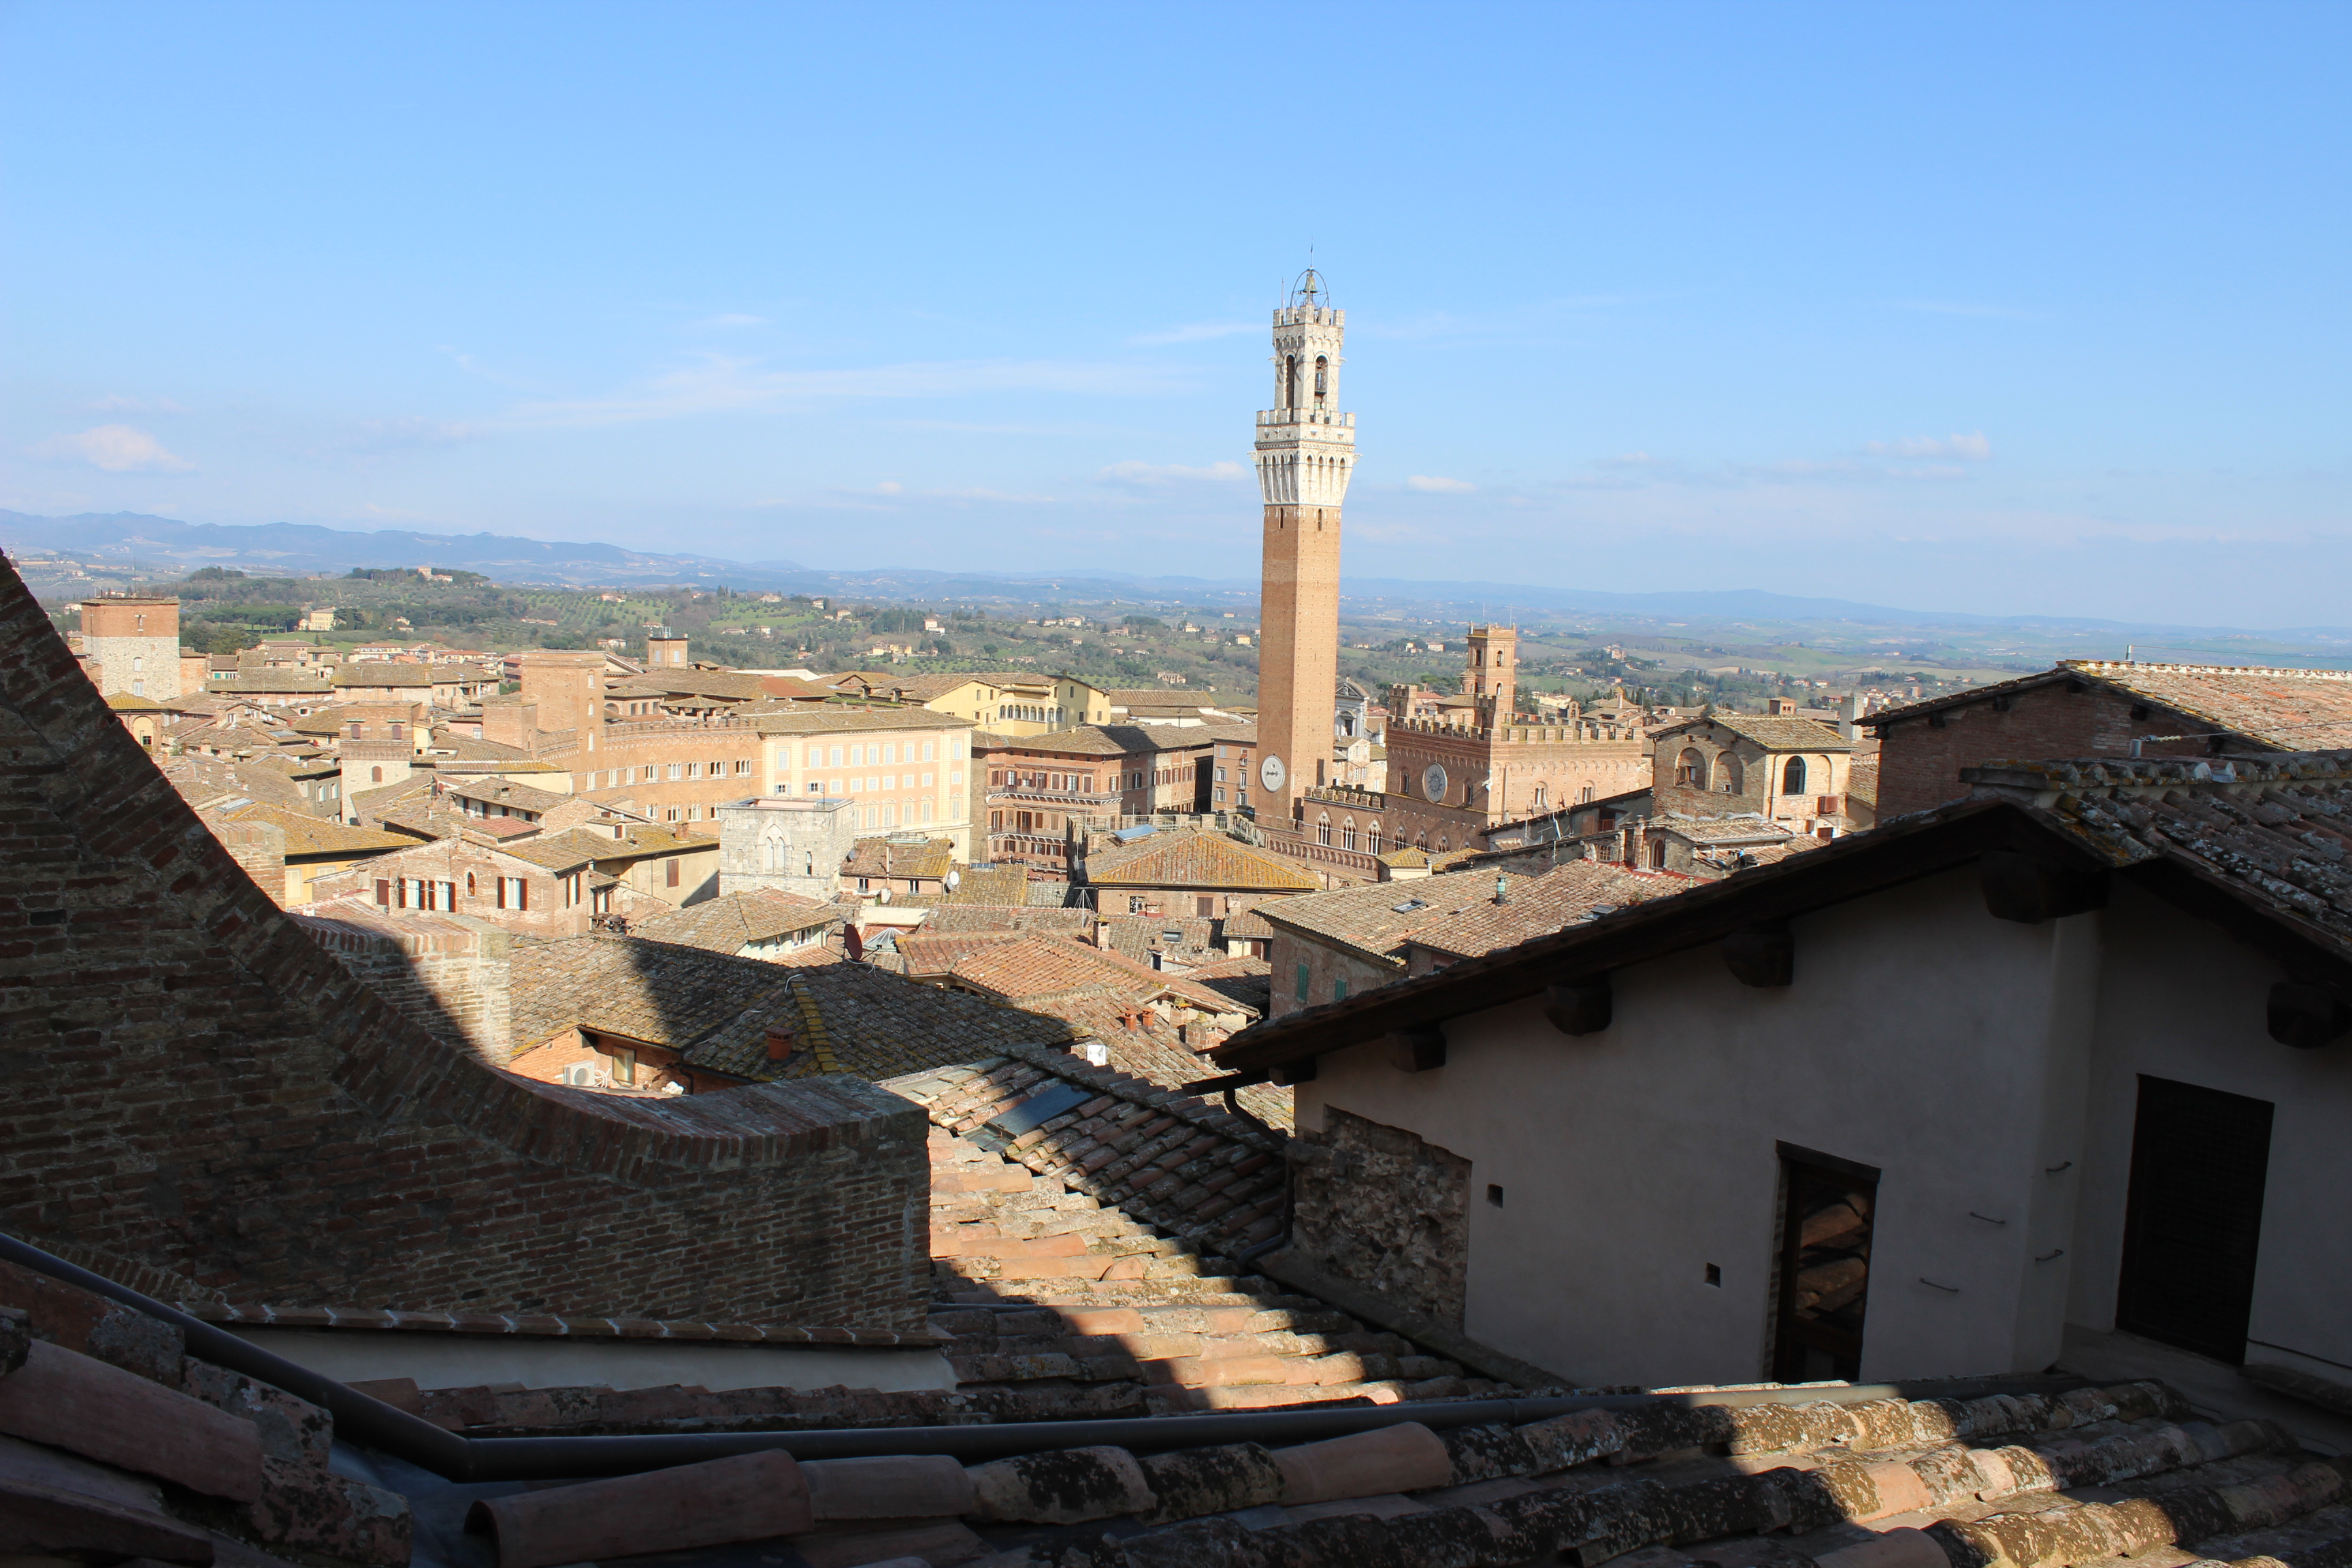 How I accidentally ended up in Business Class and got completely lost in Siena, Italy